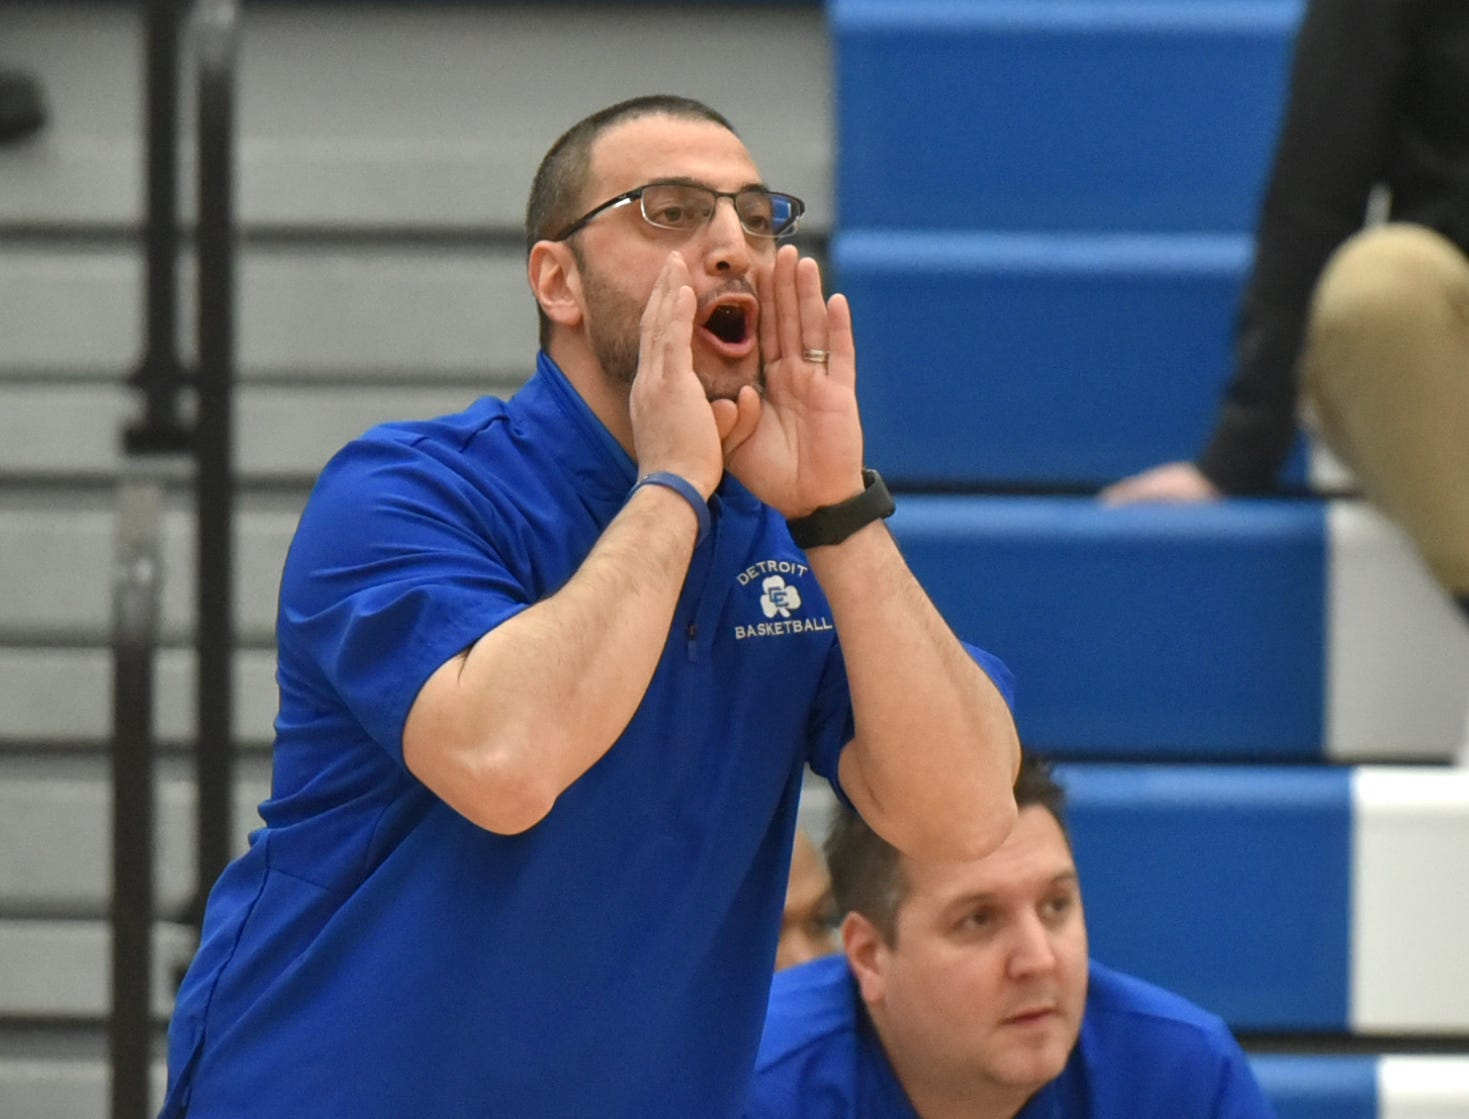 Detroit Catholic Central head coach Brandon Sinawi yells some instructions to his Shamrock varsity team.